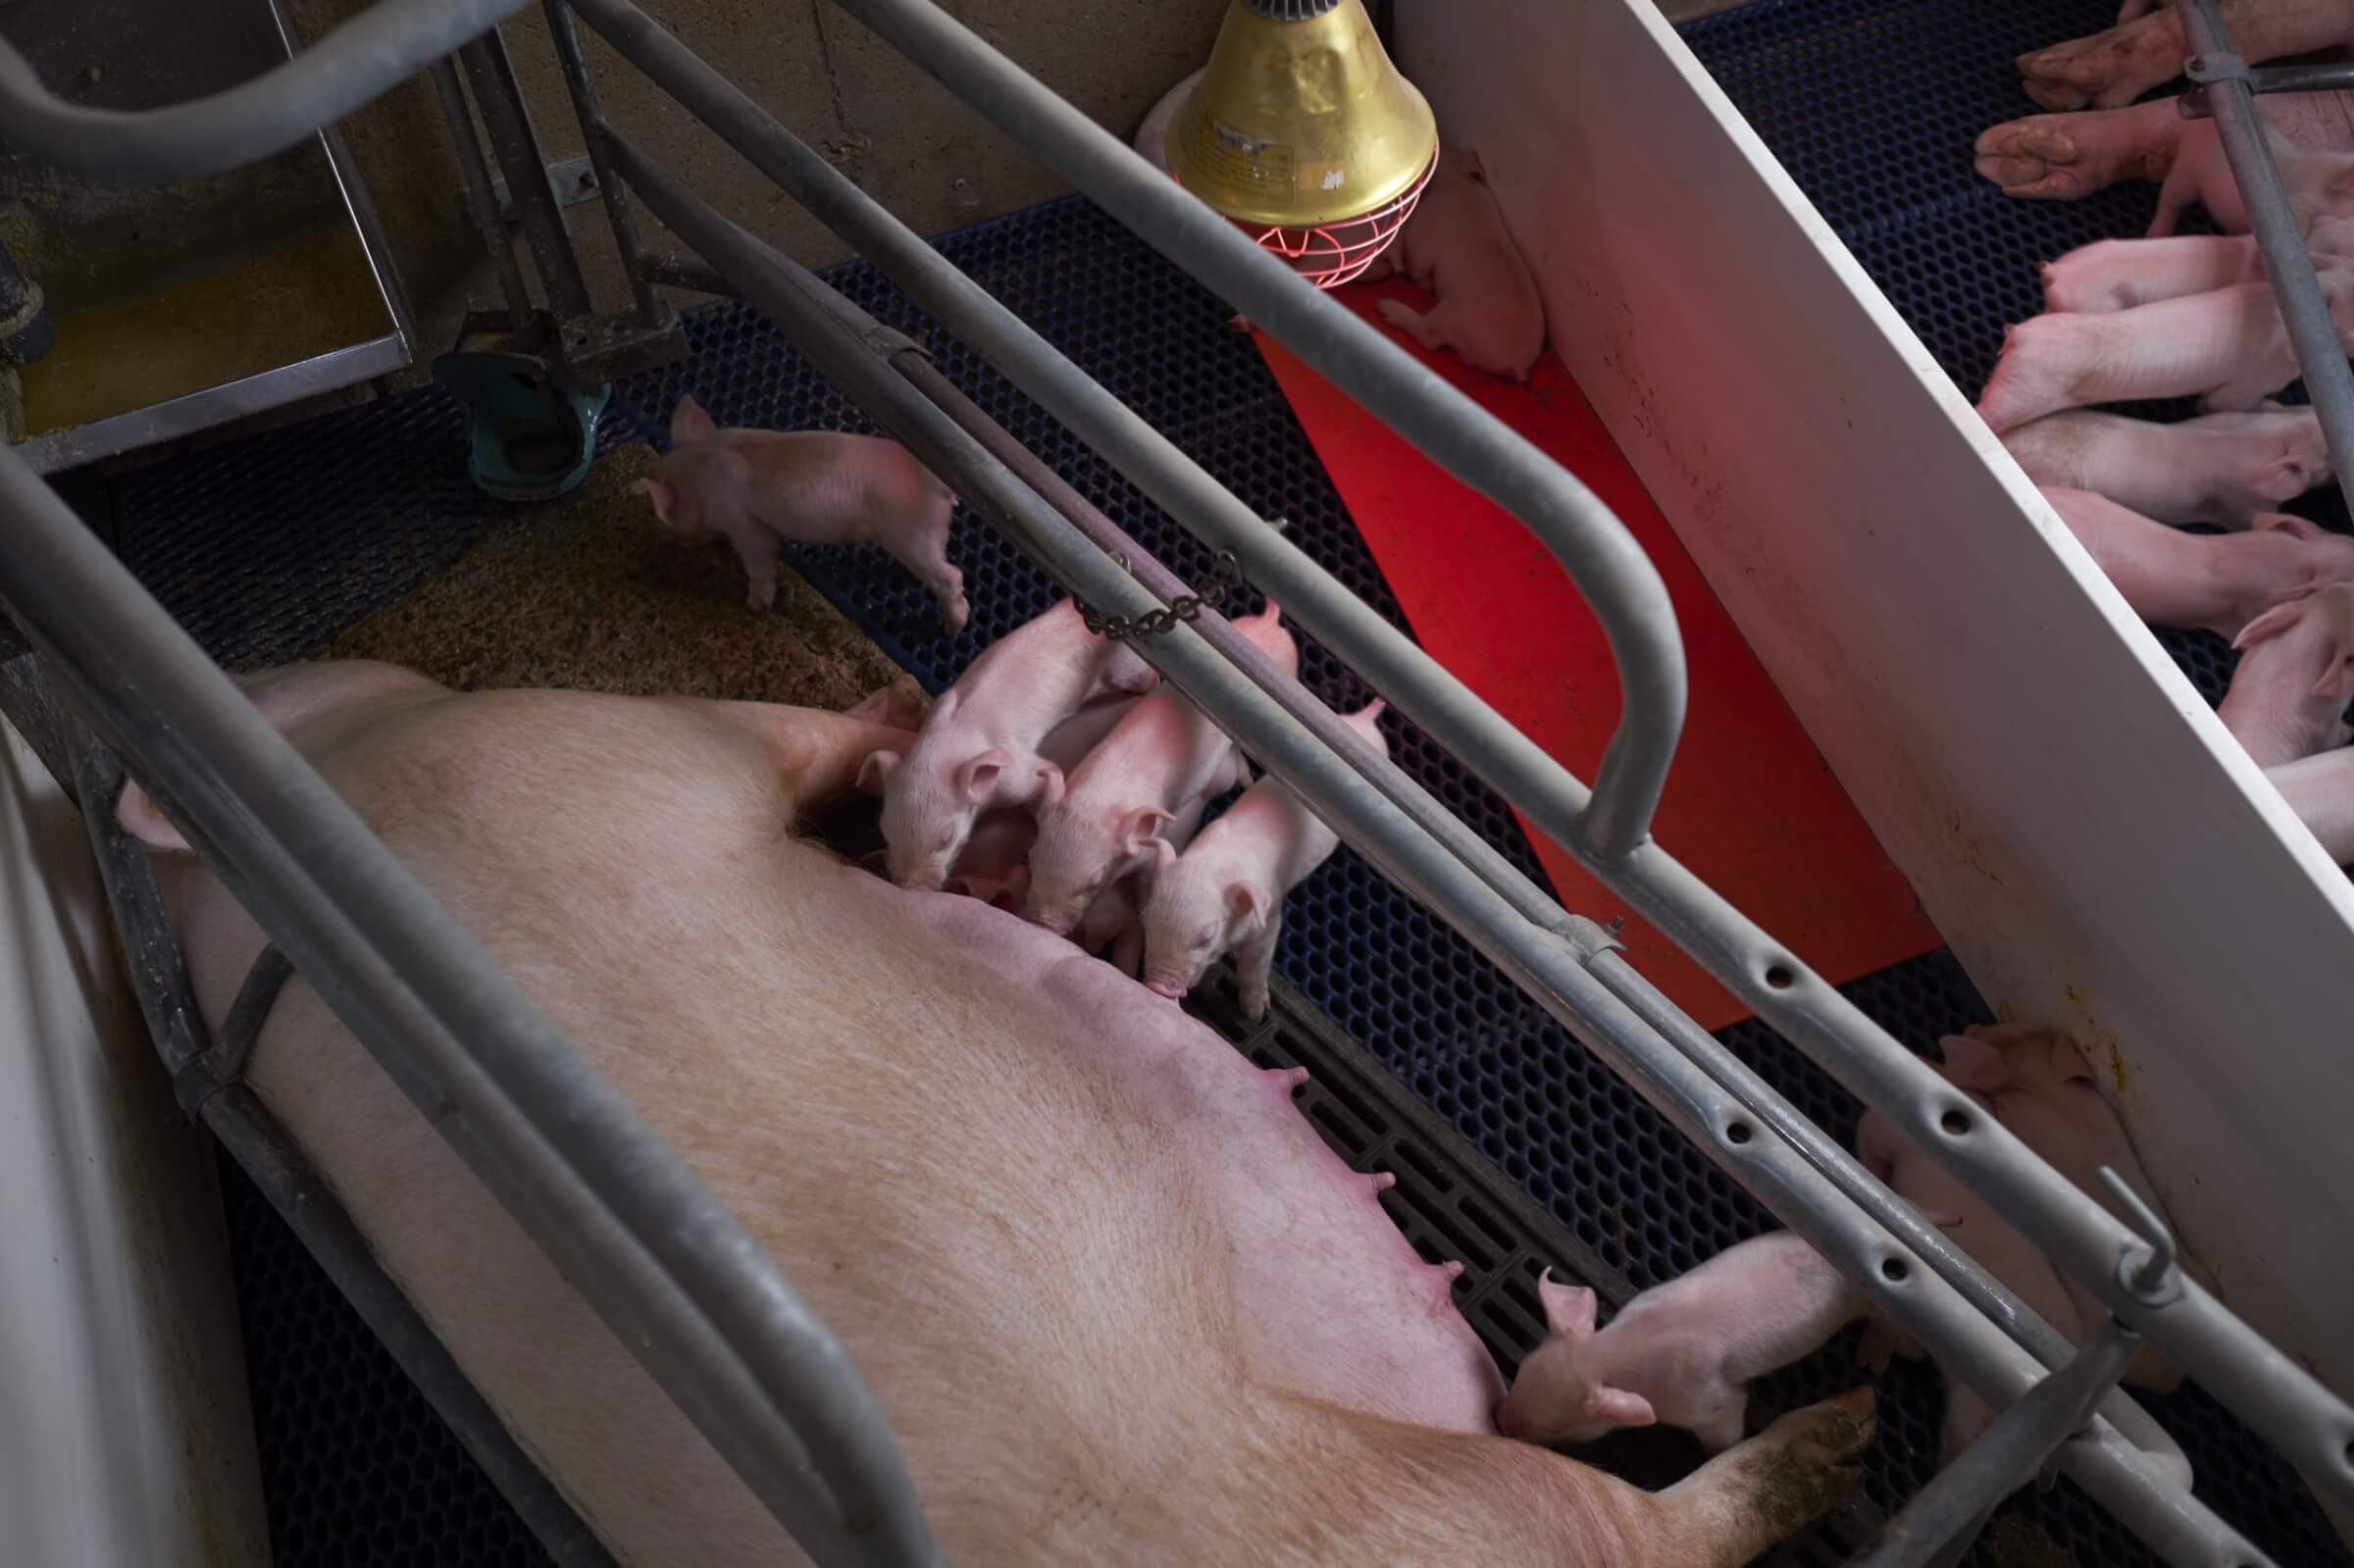 Farrowing crates are used to protect piglets and the sow